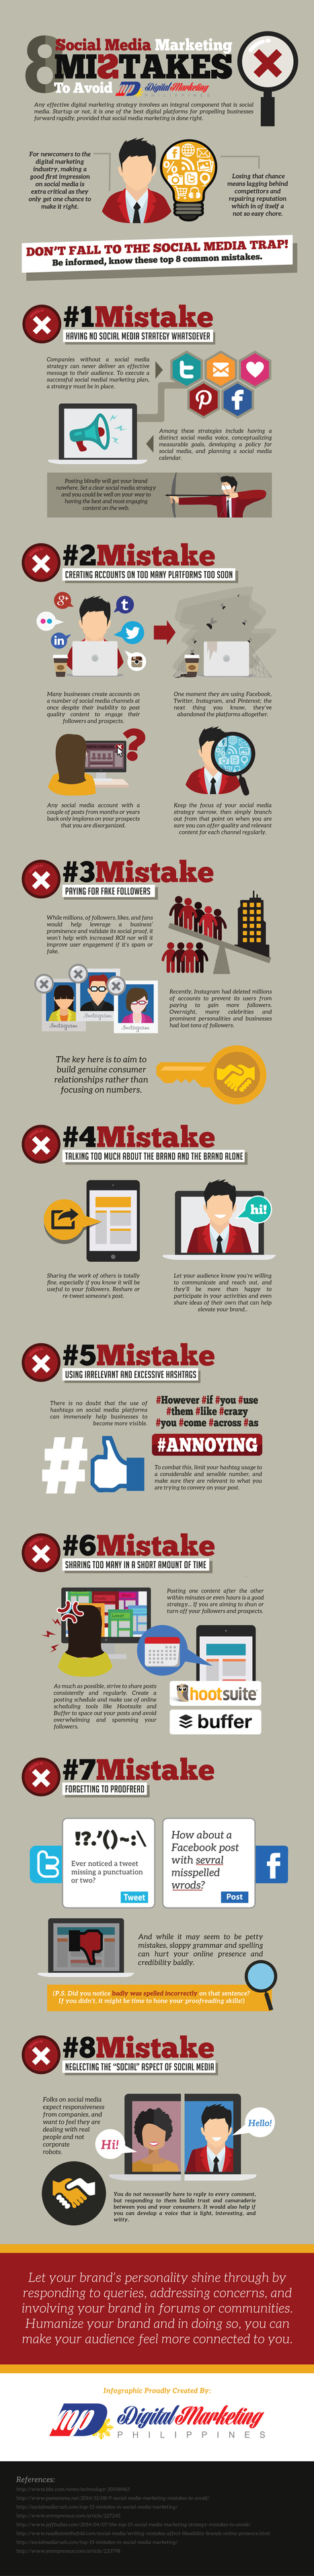 8 Social Media Mistakes to Avoid #INFOGRAPHIC | Digital boards | Scoop.it